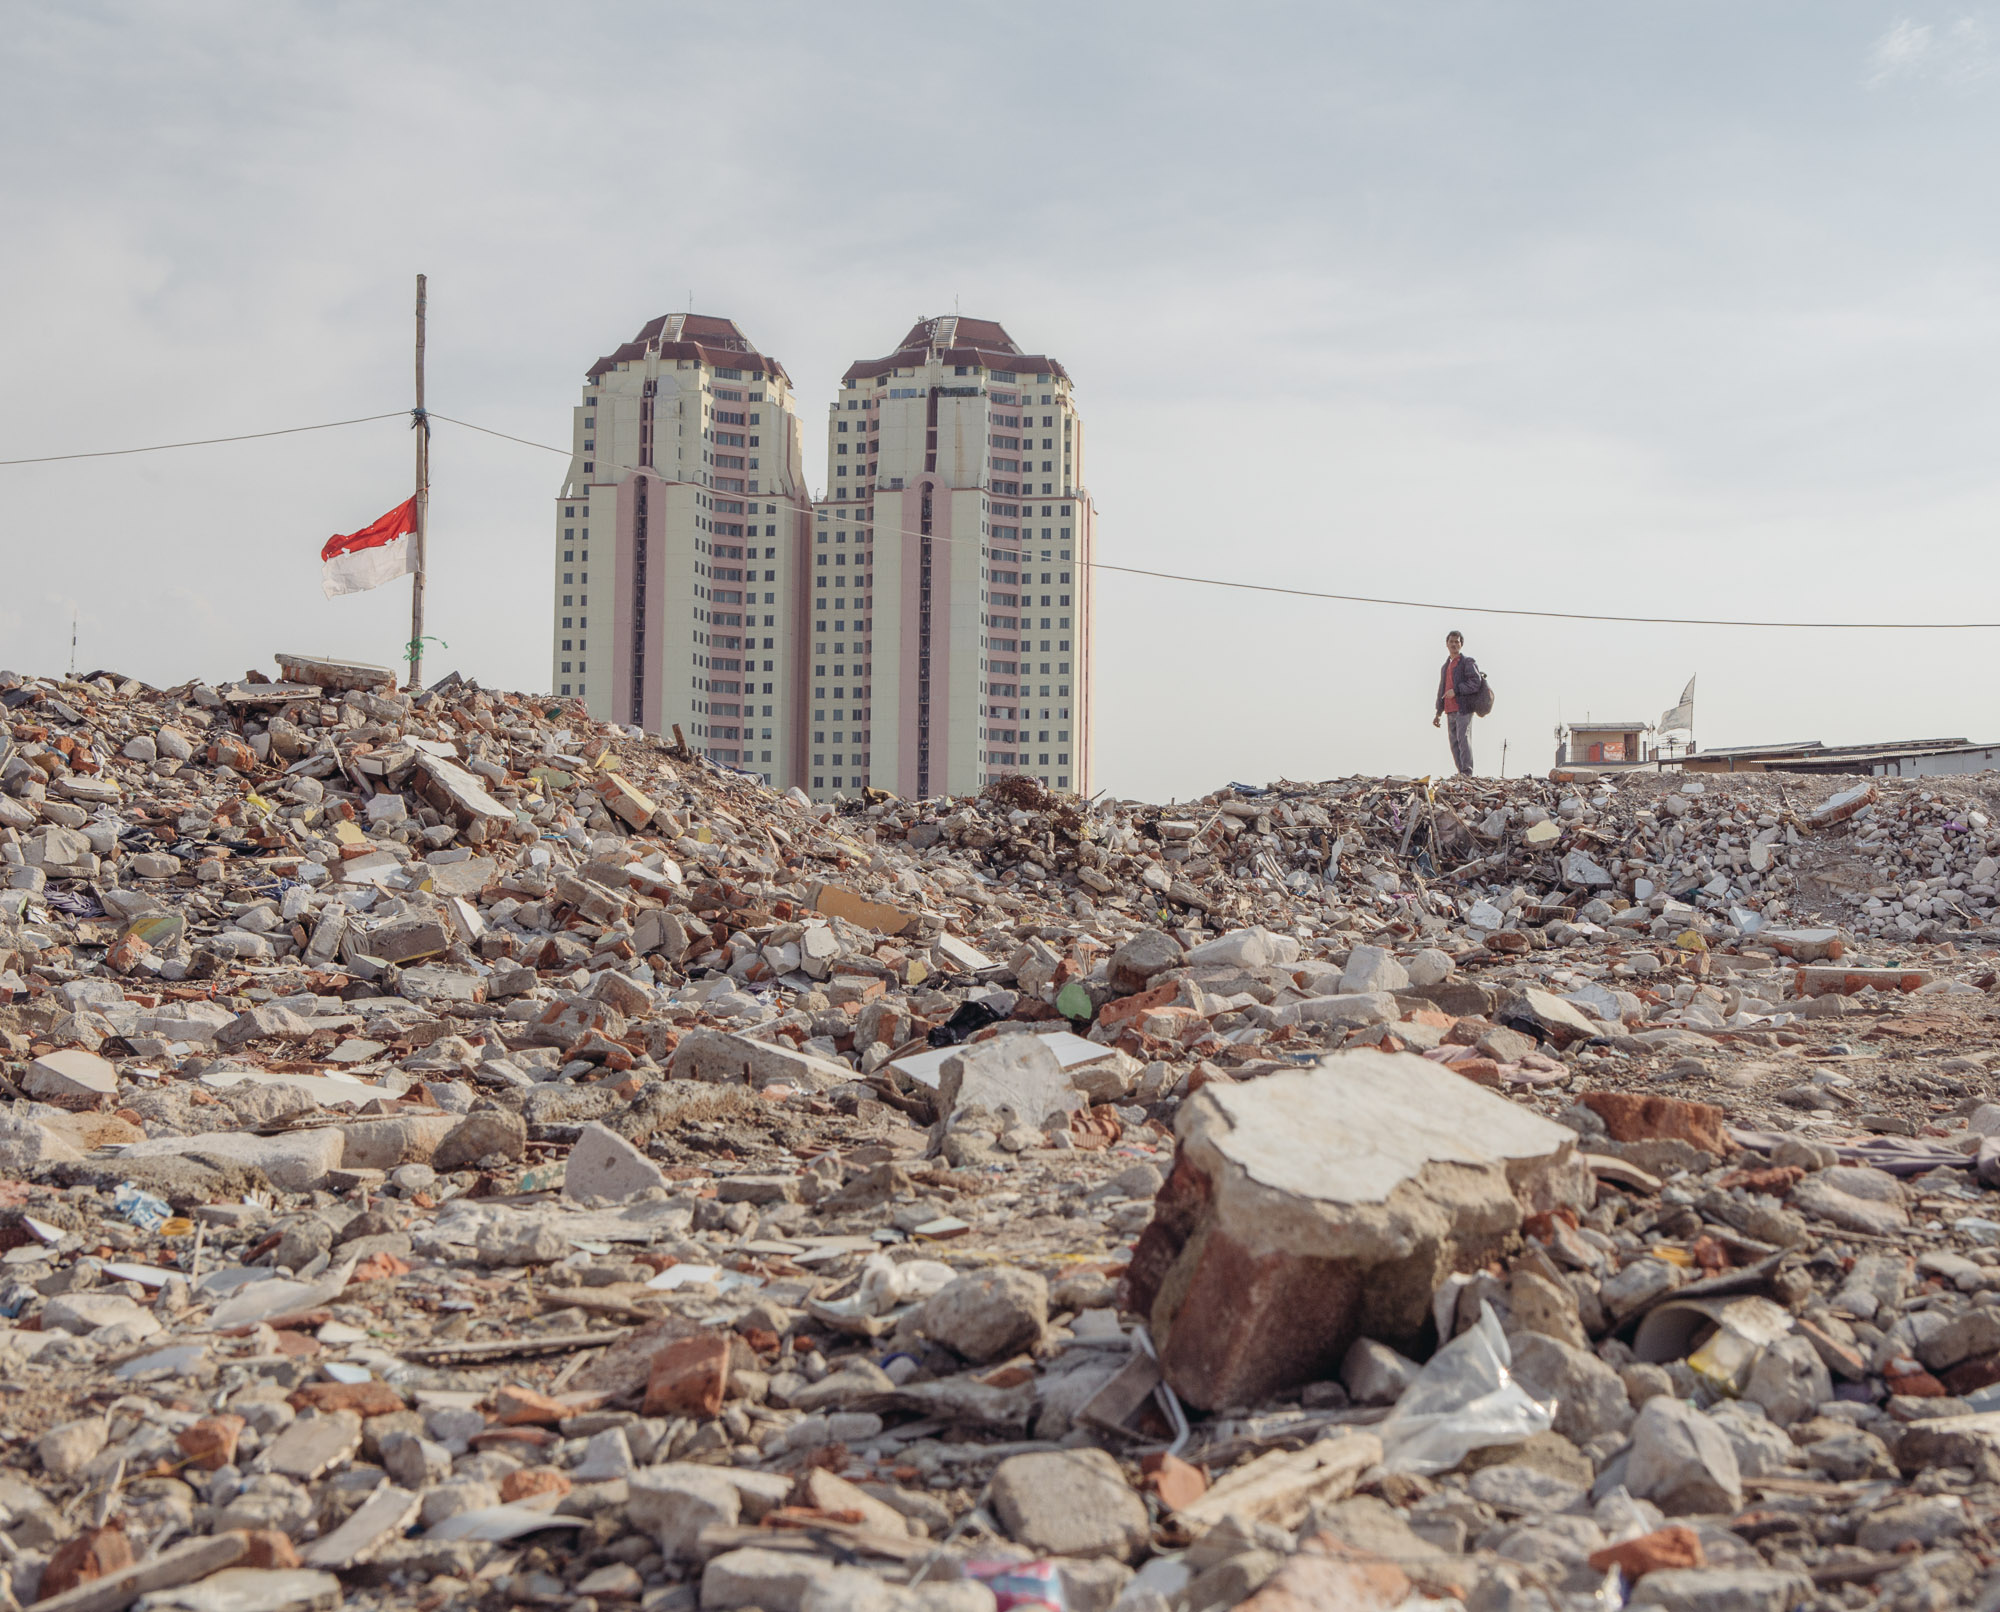 As part of Jakarta's river revitalization project, Pasar Ikan district was recently razed, leaving its residents homeless. (Photo by Muhammad Fadli/GroundTruth)